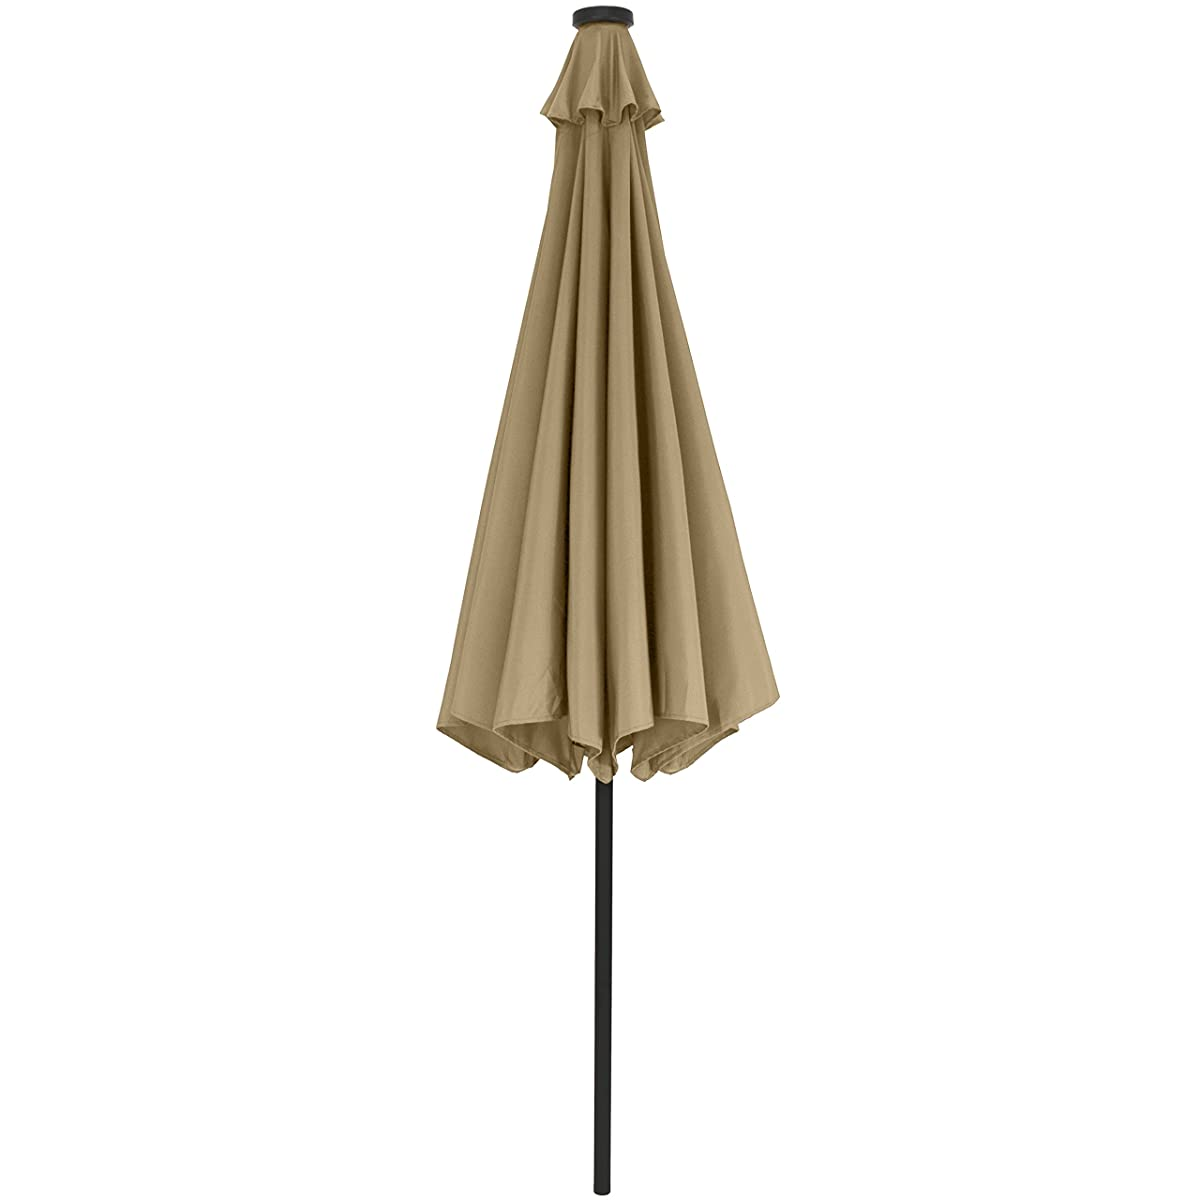 Best Choice Products 10 Deluxe Solar LED Lighted Patio Umbrella With Tilt Adjustment-Tan